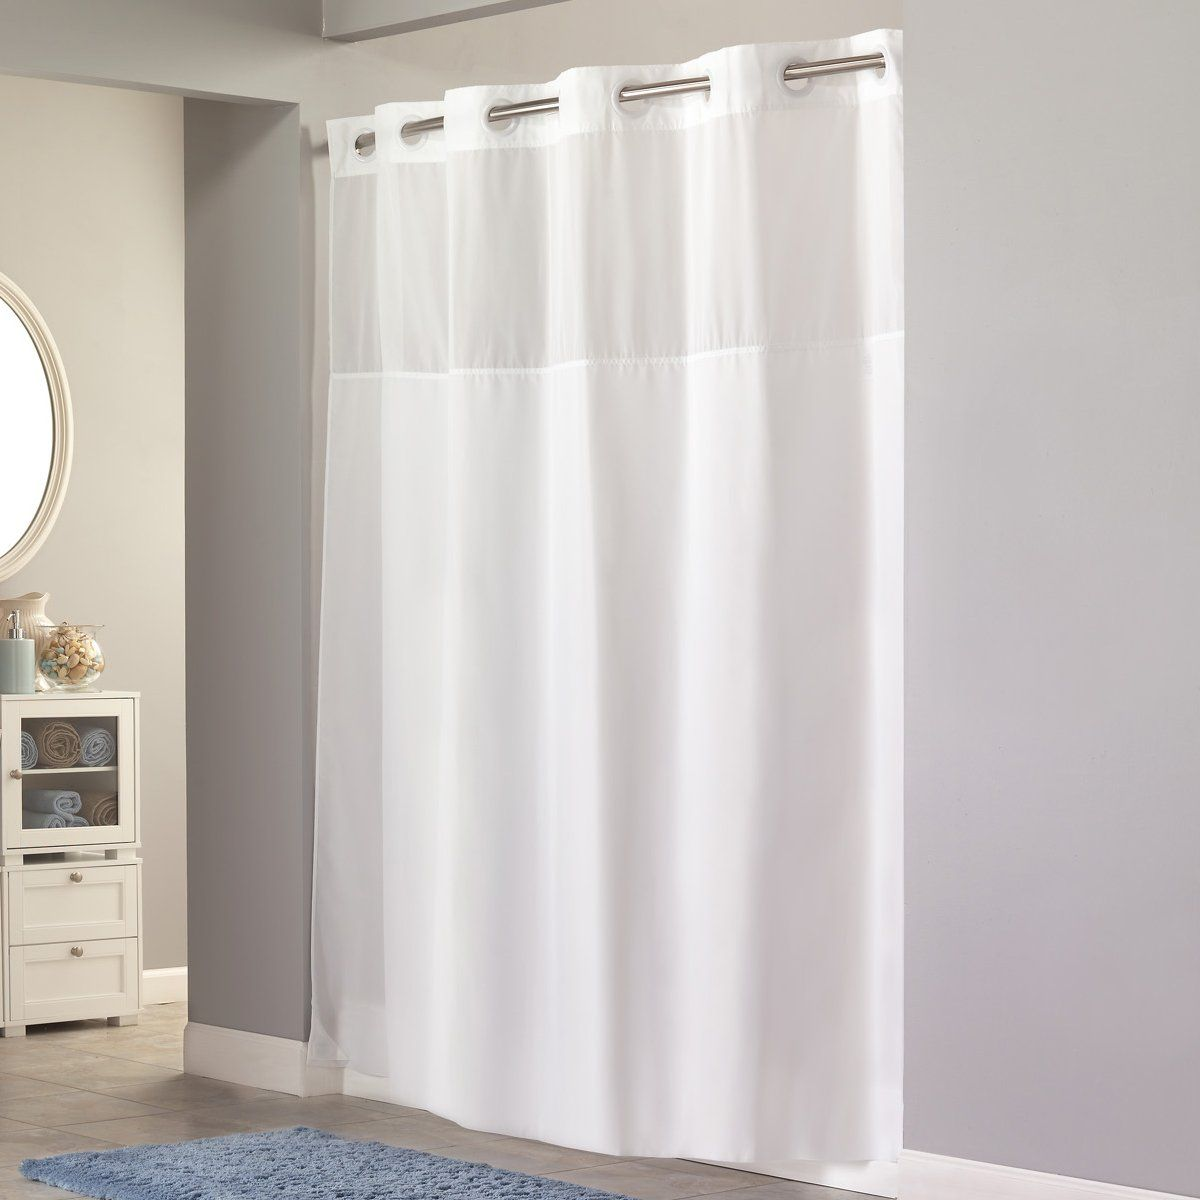 Like the hookless look for master bath new home items pinterest